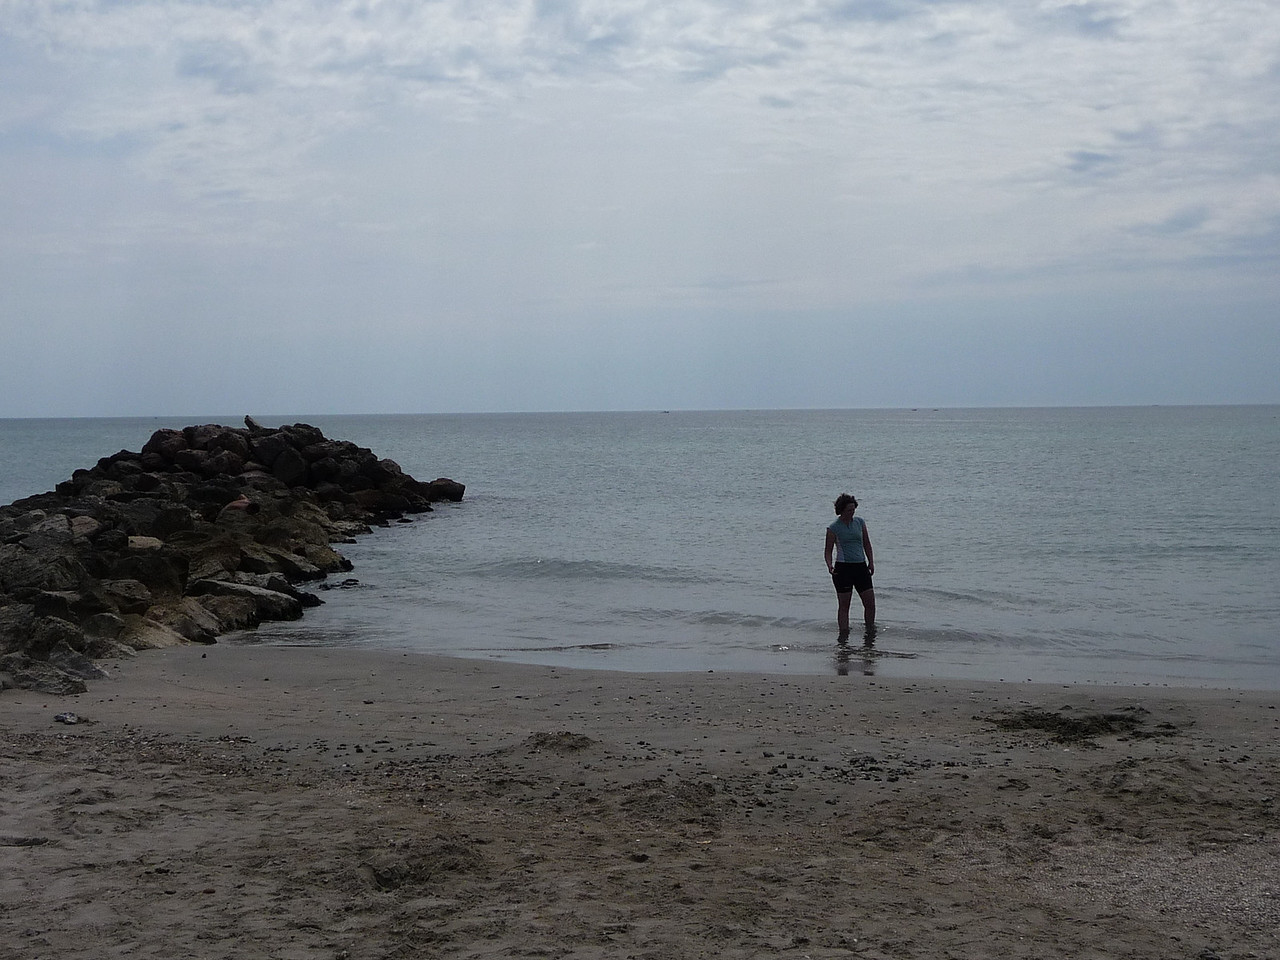 Testing the water in the Mediterranean. It was cold! Location - Frontignan